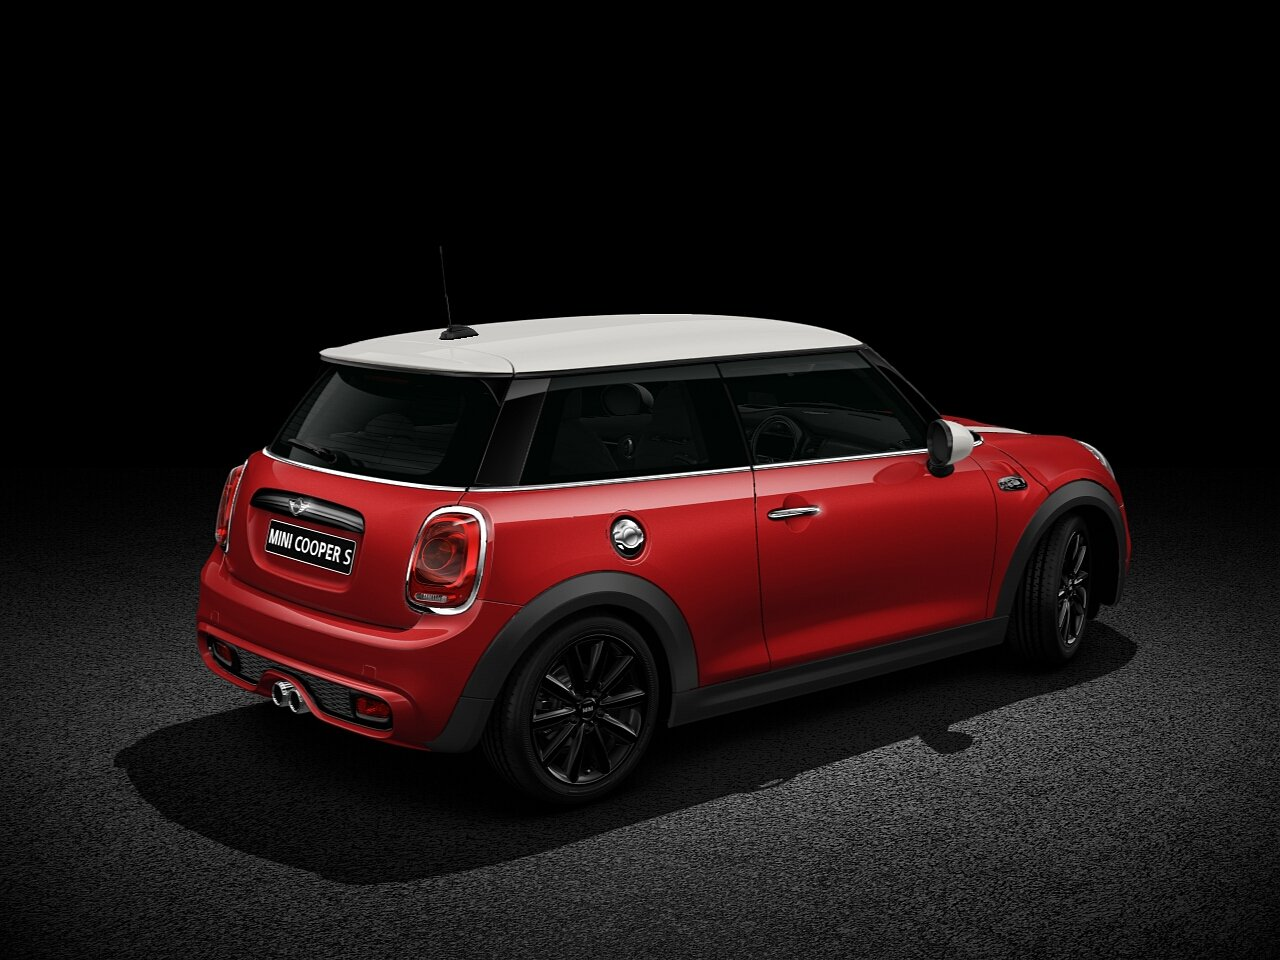 2014 mini cooper s ii pictures information and specs auto. Black Bedroom Furniture Sets. Home Design Ideas